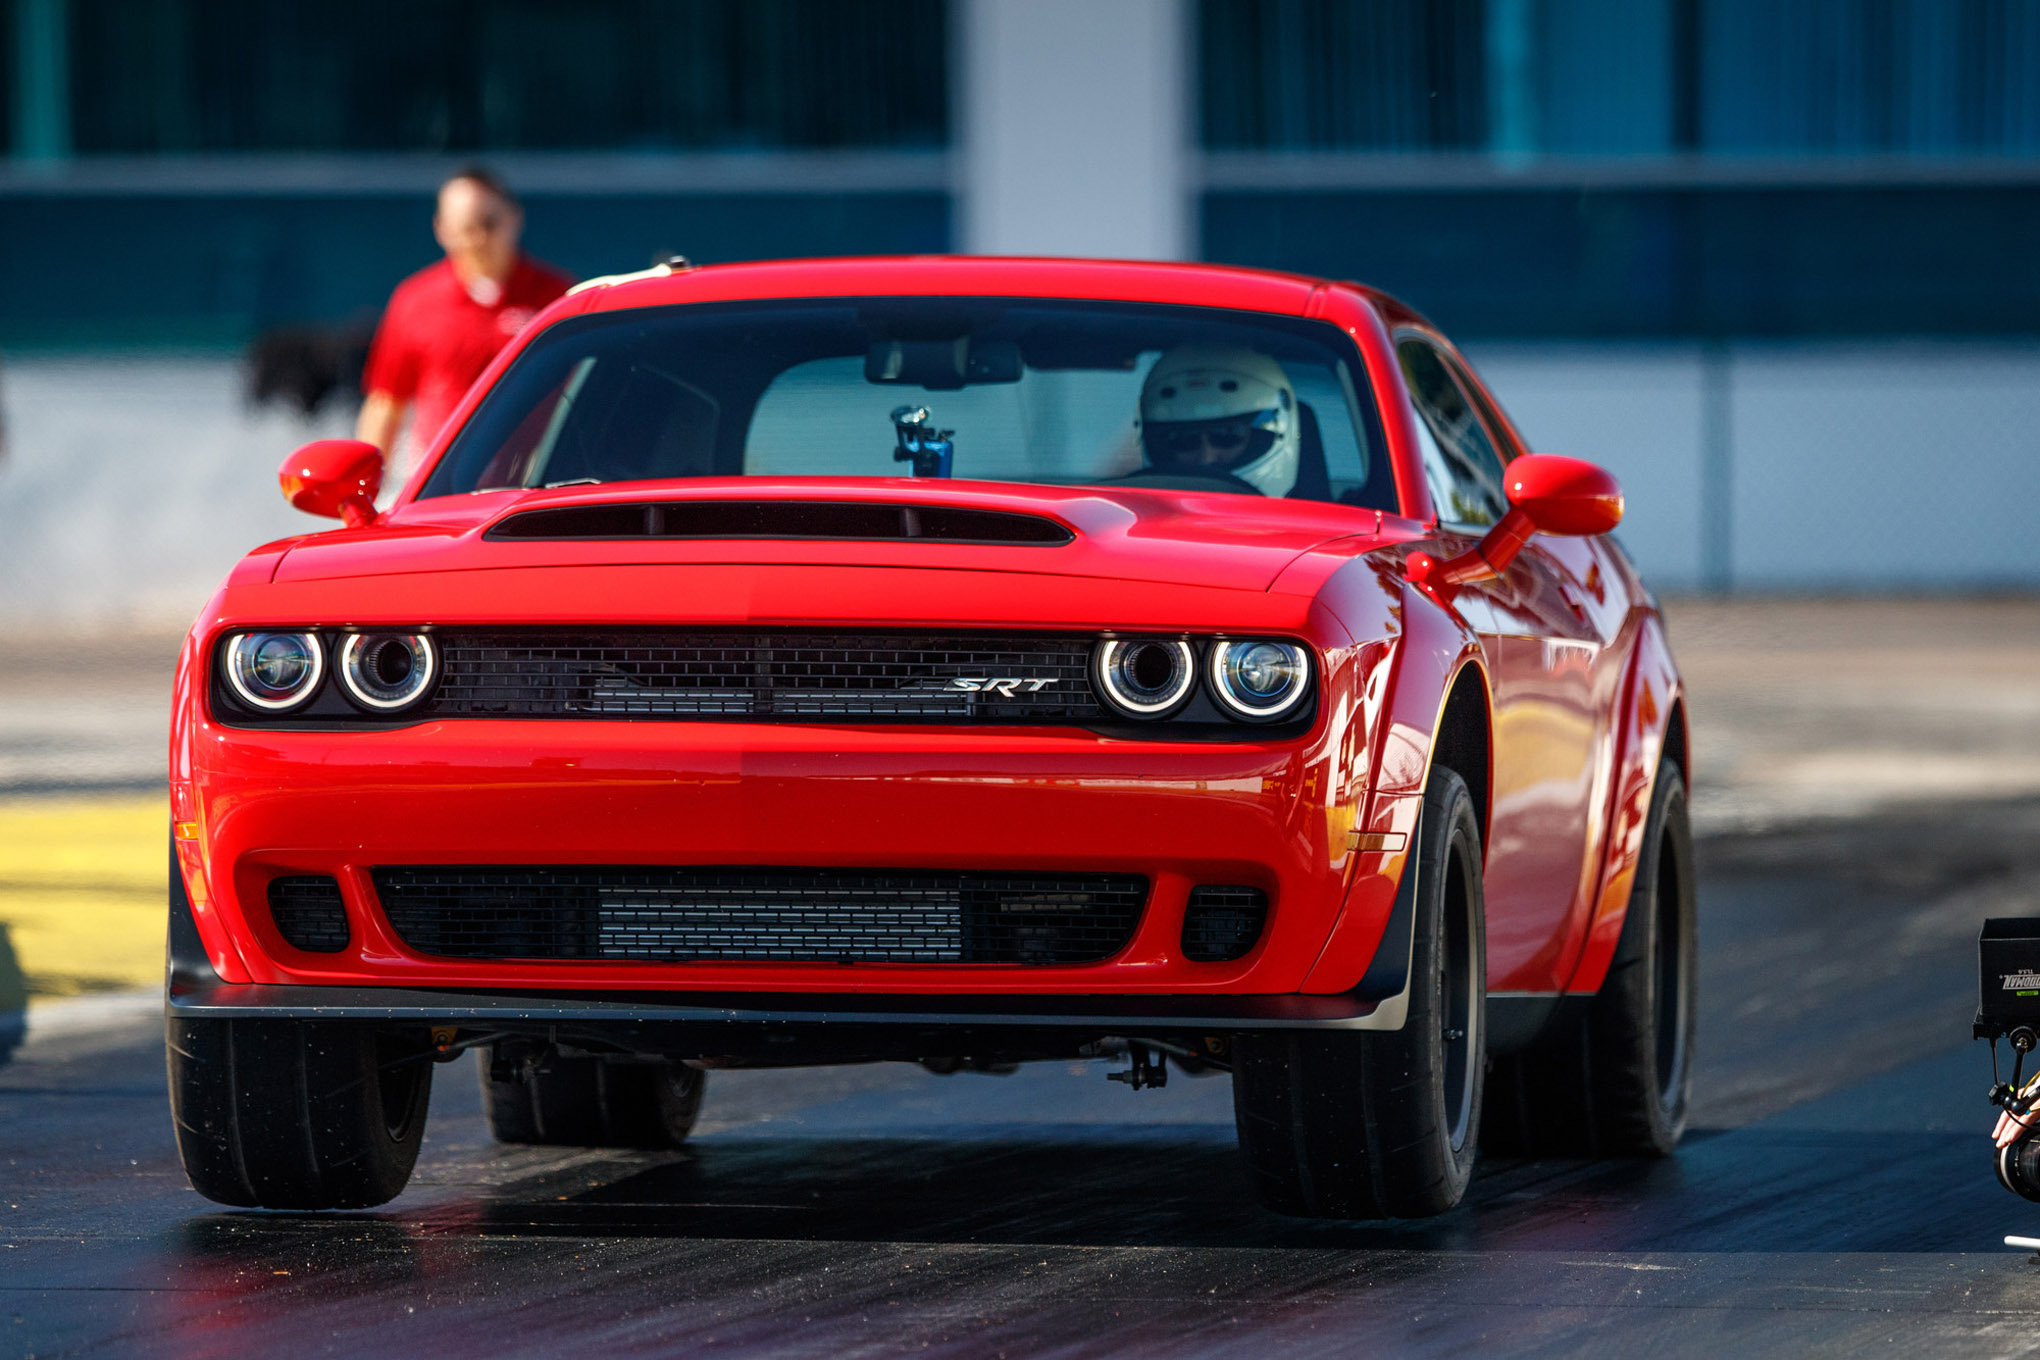 153-2018-dodge-demon.jpg